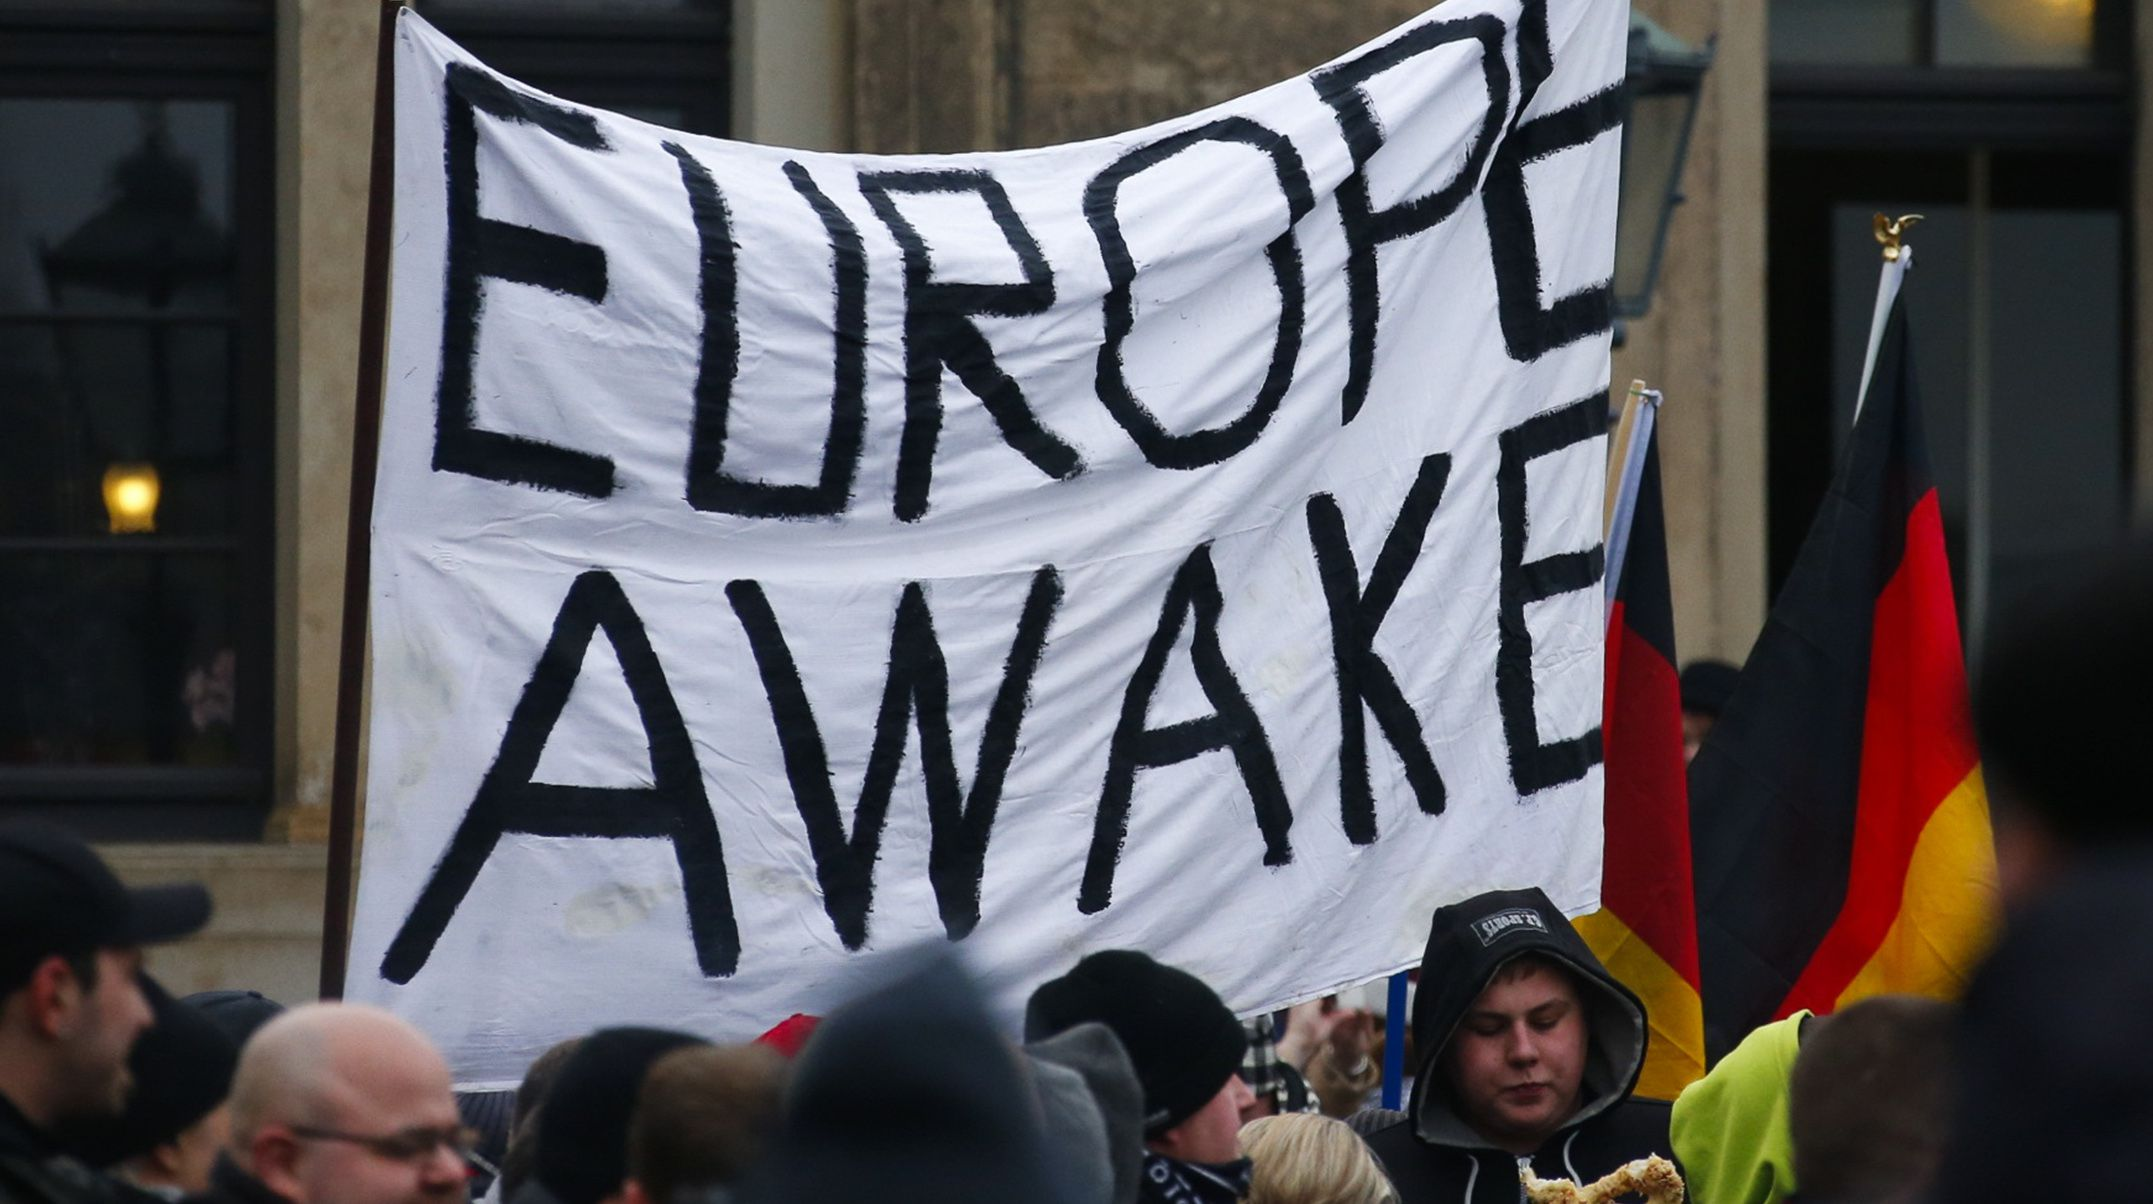 Members of the movement of Patriotic Europeans Against the Islamisation of the West (PEGIDA) hold flags and banners during a PEGIDA demonstration march in Dresden, January 25, 2015. REUTERS/Hannibal Hanschke (GERMANY  - Tags: POLITICS CIVIL UNREST)   - RTR4MTAL